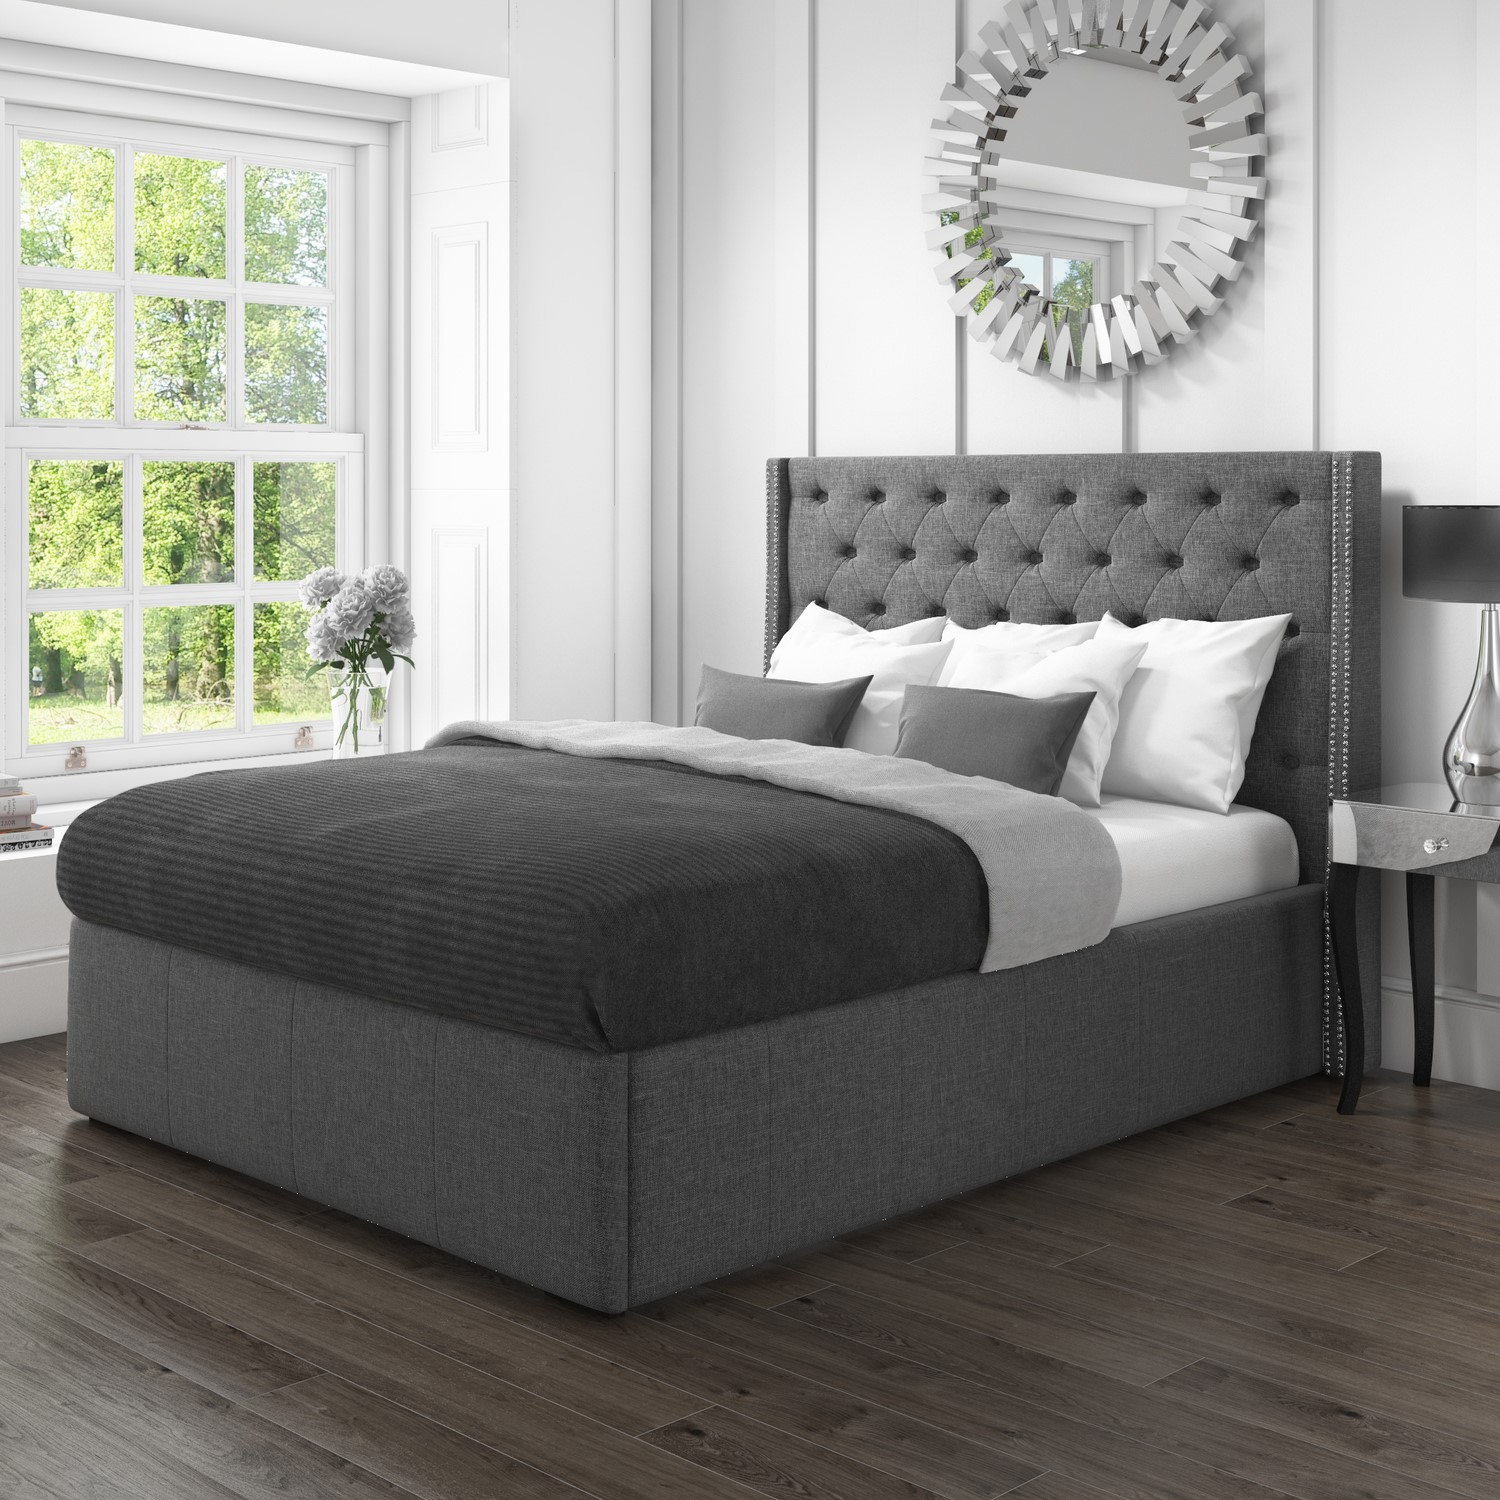 Safina King Size Wing Back Bed with Stud Detail in Woven Grey Fabric